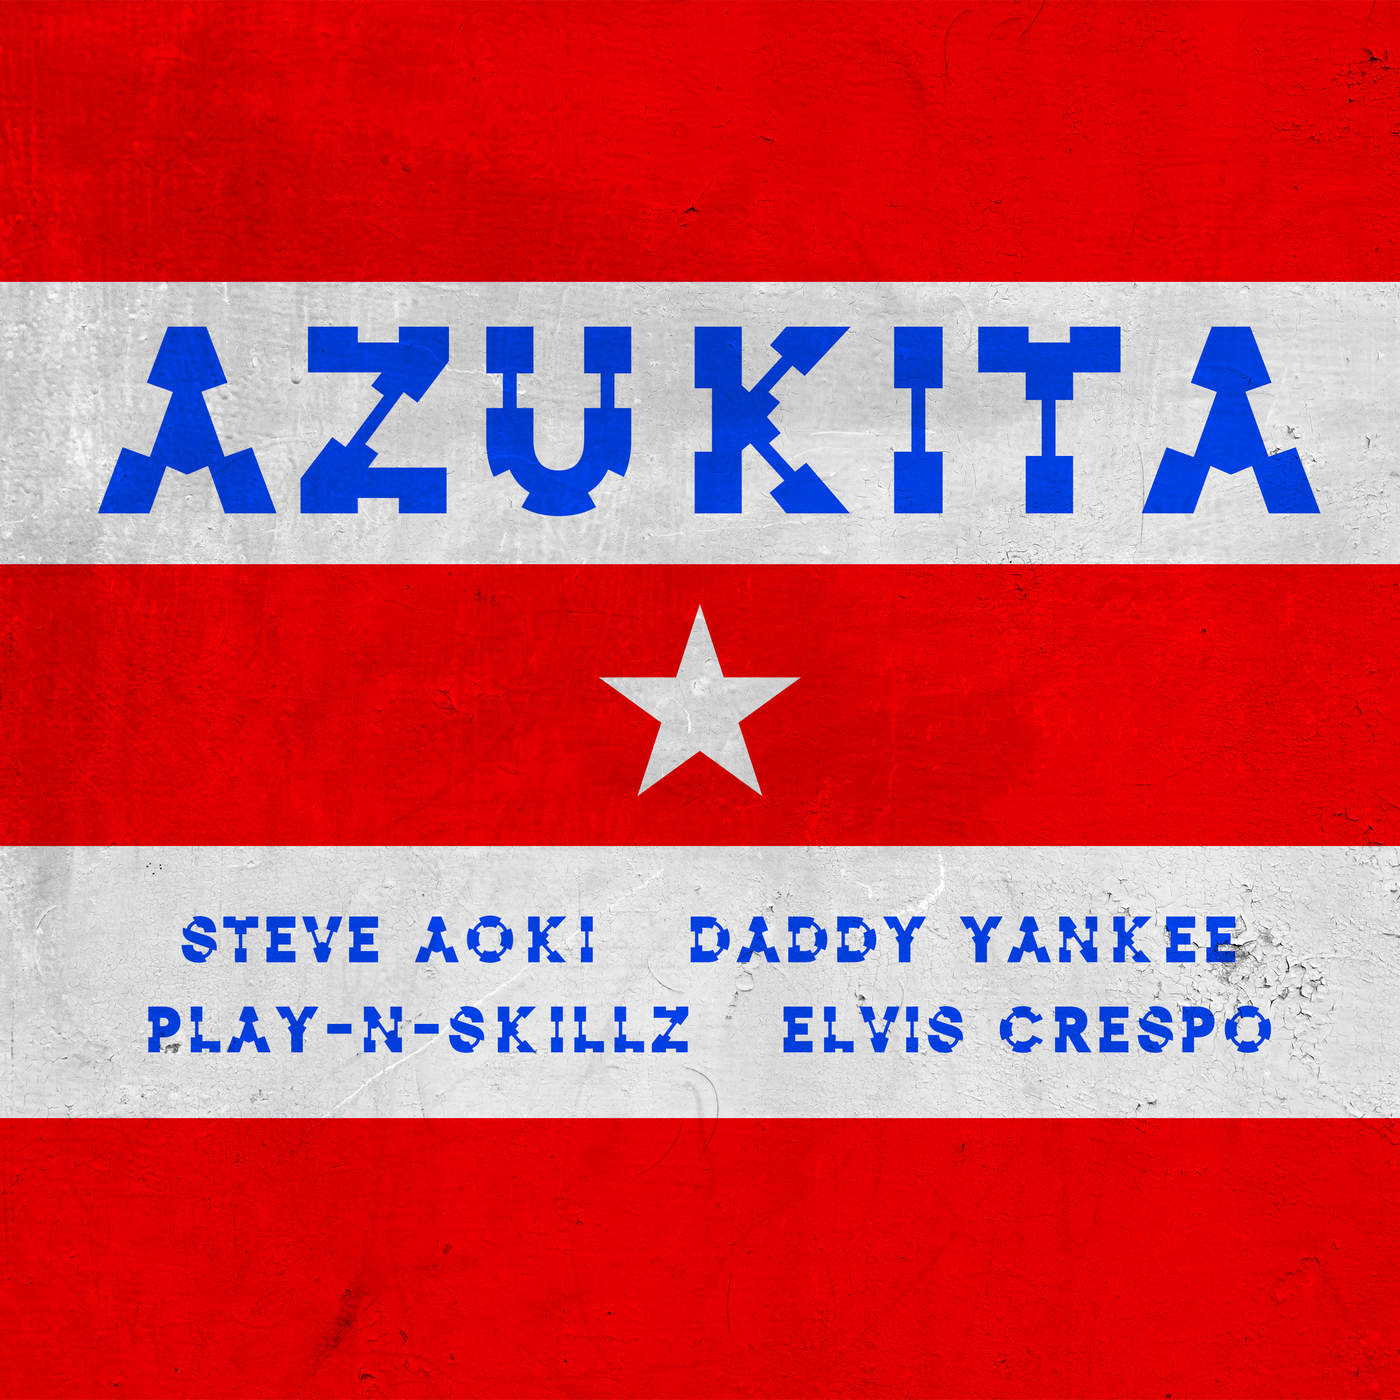 Steve Aoki, Daddy Yankee, Play-N-Skillz & Elvis Crespo - Azukita - Single Cover